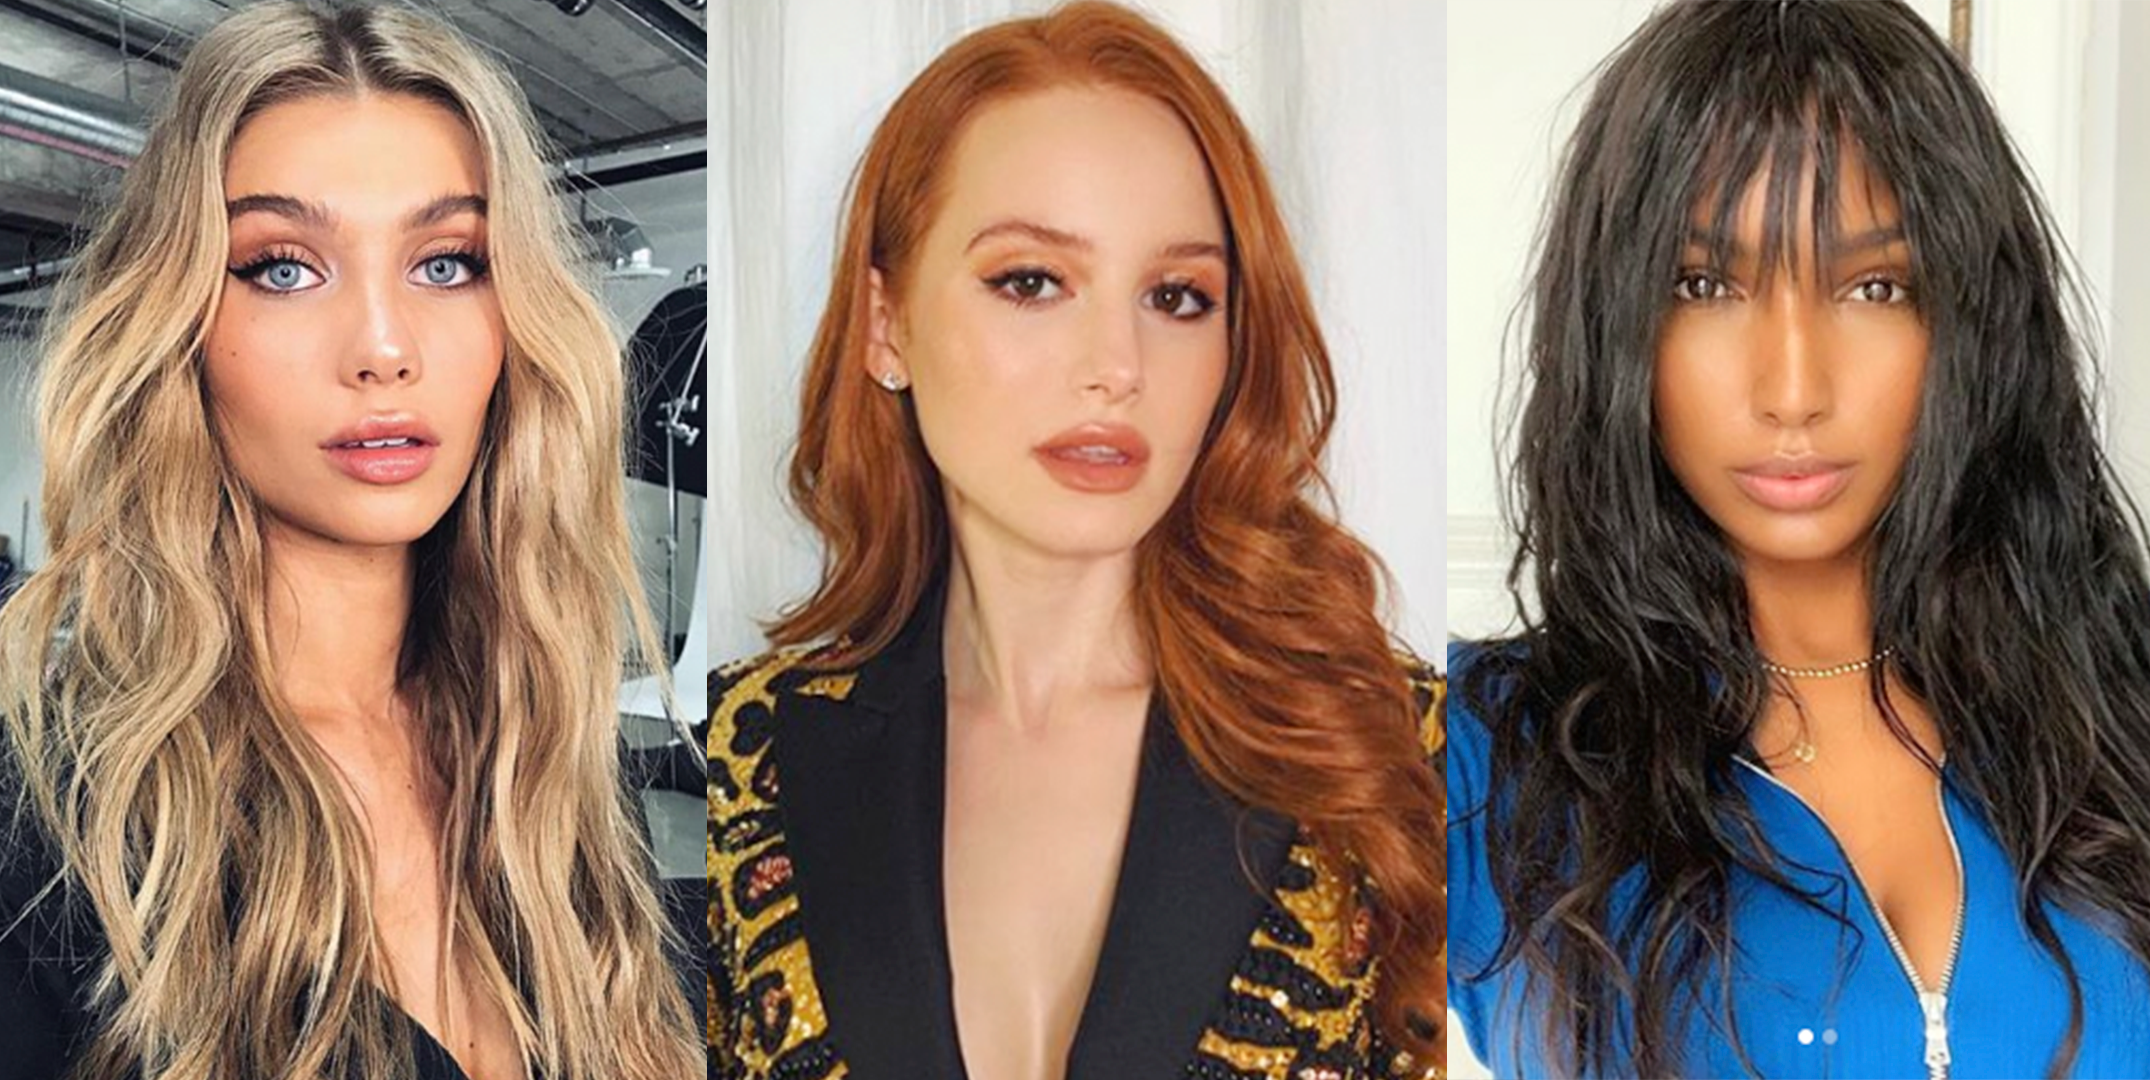 12 Best At Home Hair Colors and Dyes for 2019 - Drugstore ...